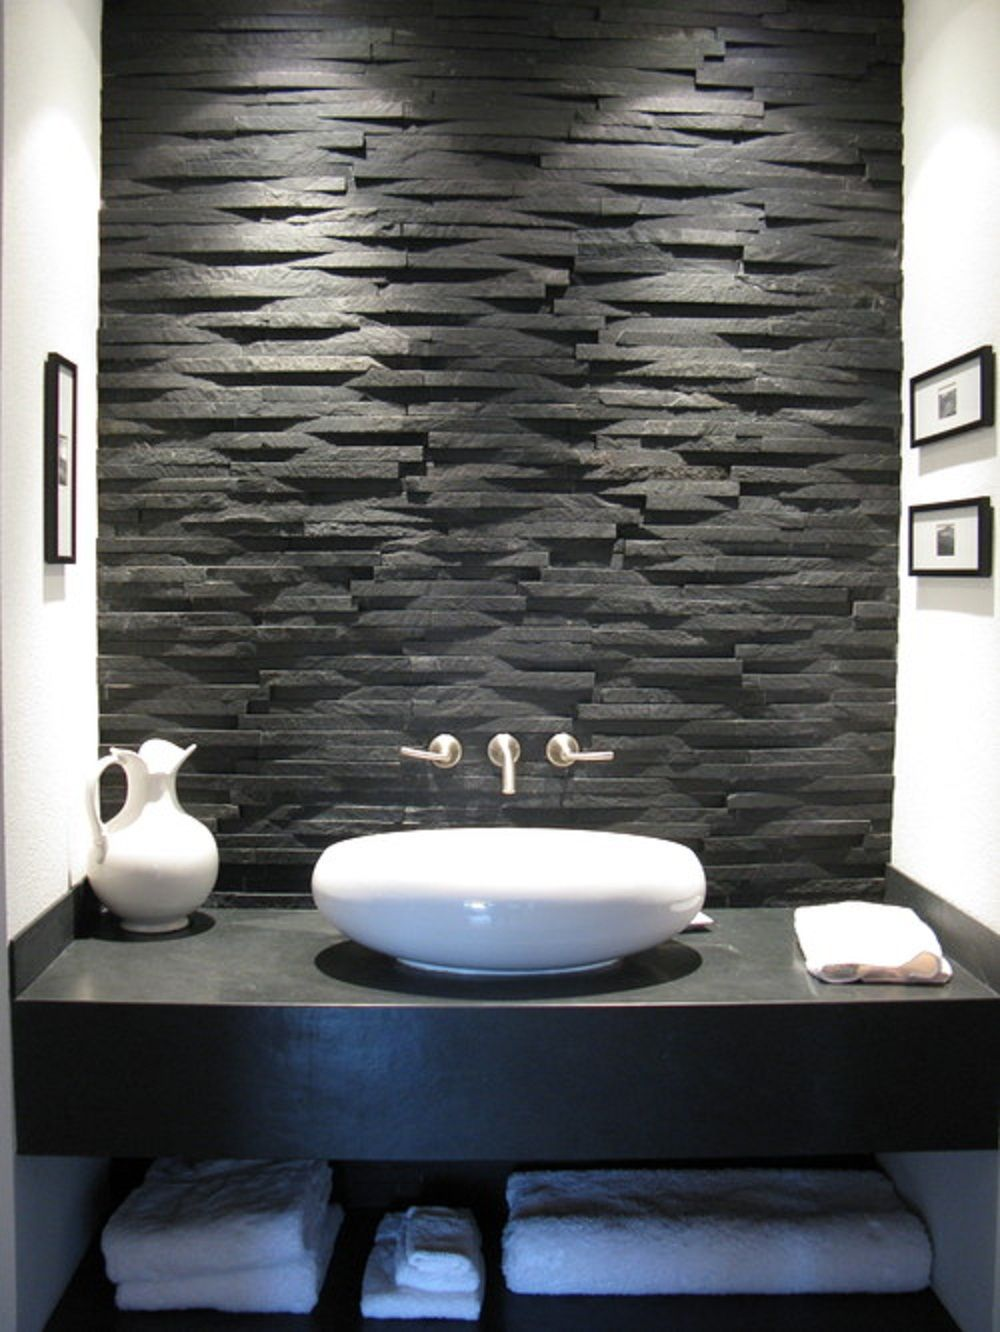 Bathroom Wall Light Effect Of The Back Wall Natural Stone 1 2